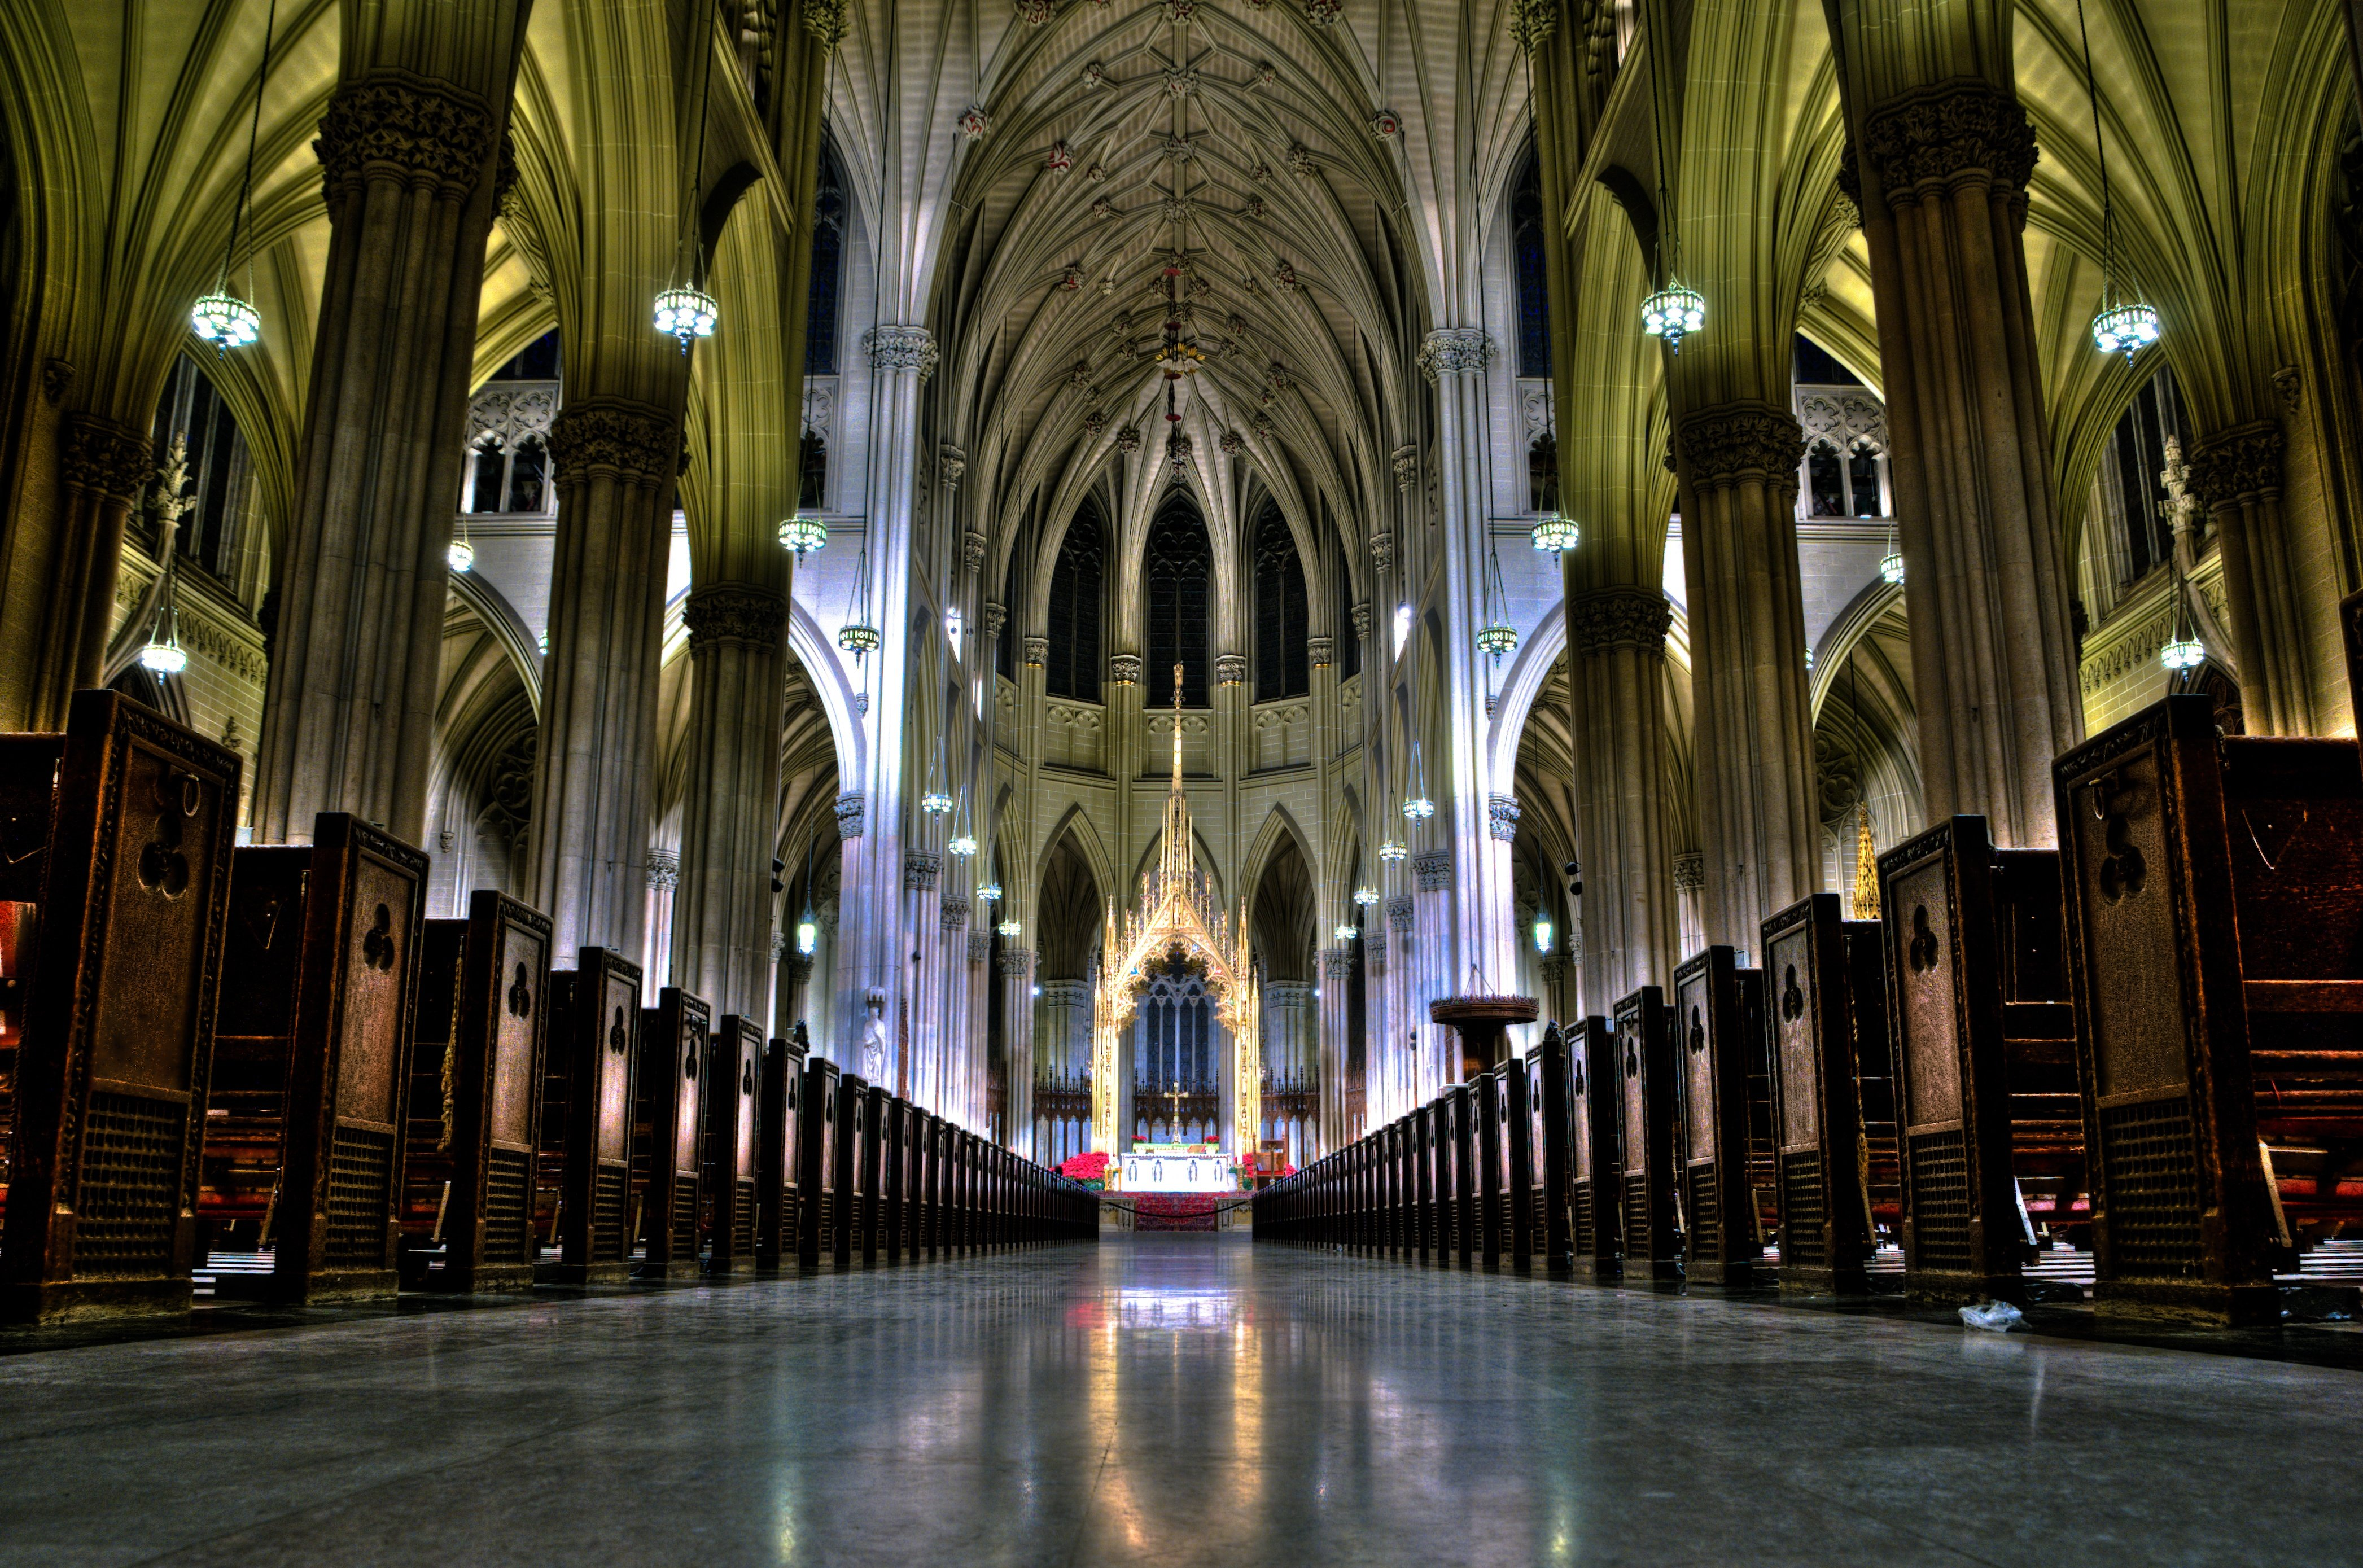 st patricks cathedral As a then 28-year-old jewish journalist living in the village, it was incongruous  that the massive st patrick's cathedral was my refuge.